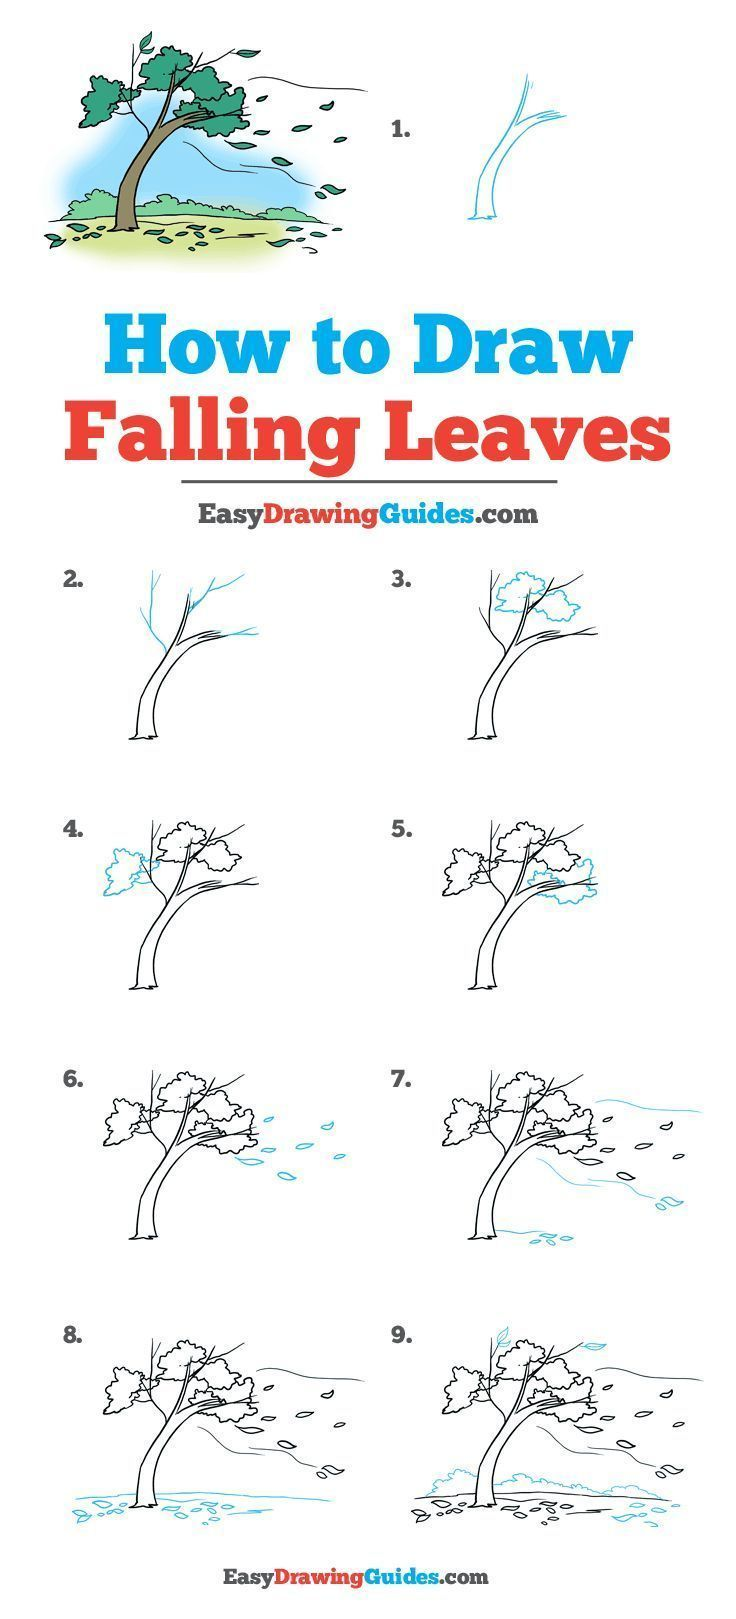 Https Www Pinterest Com Pin 590956782331103835 Drawing Tutorial Easy Flower Drawing Tutorials Flower Drawing Tutorial Step By Step